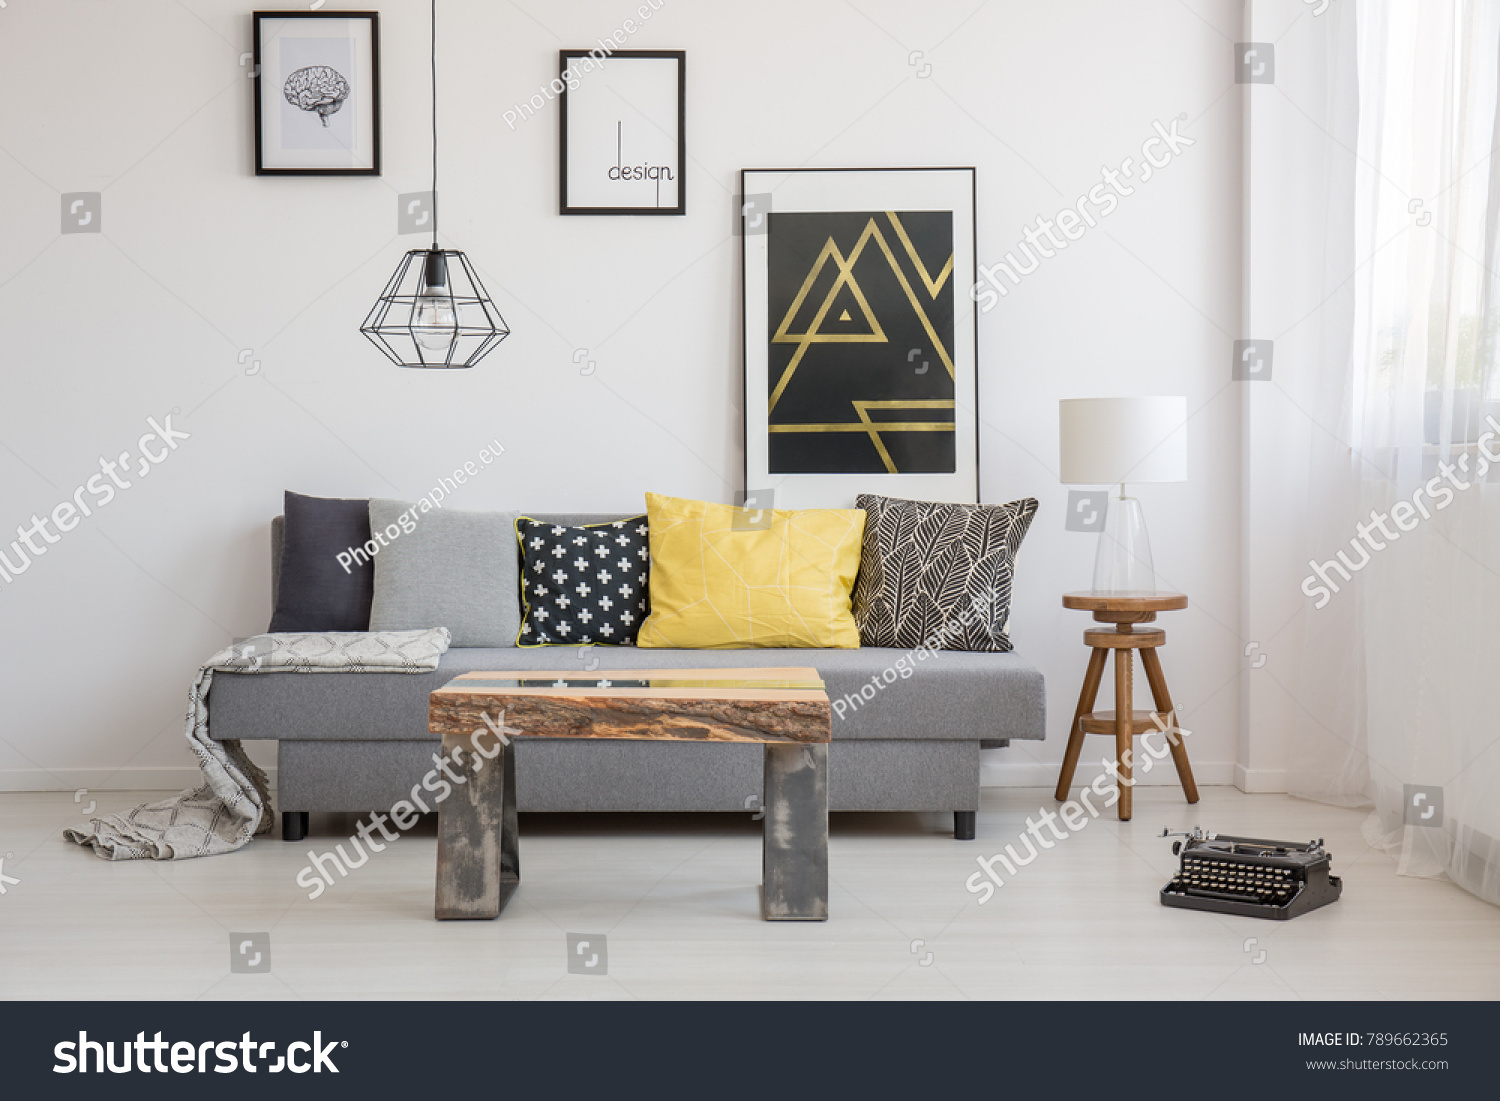 Simple Industrial Interior Design Living Room Stock Photo (Royalty ...